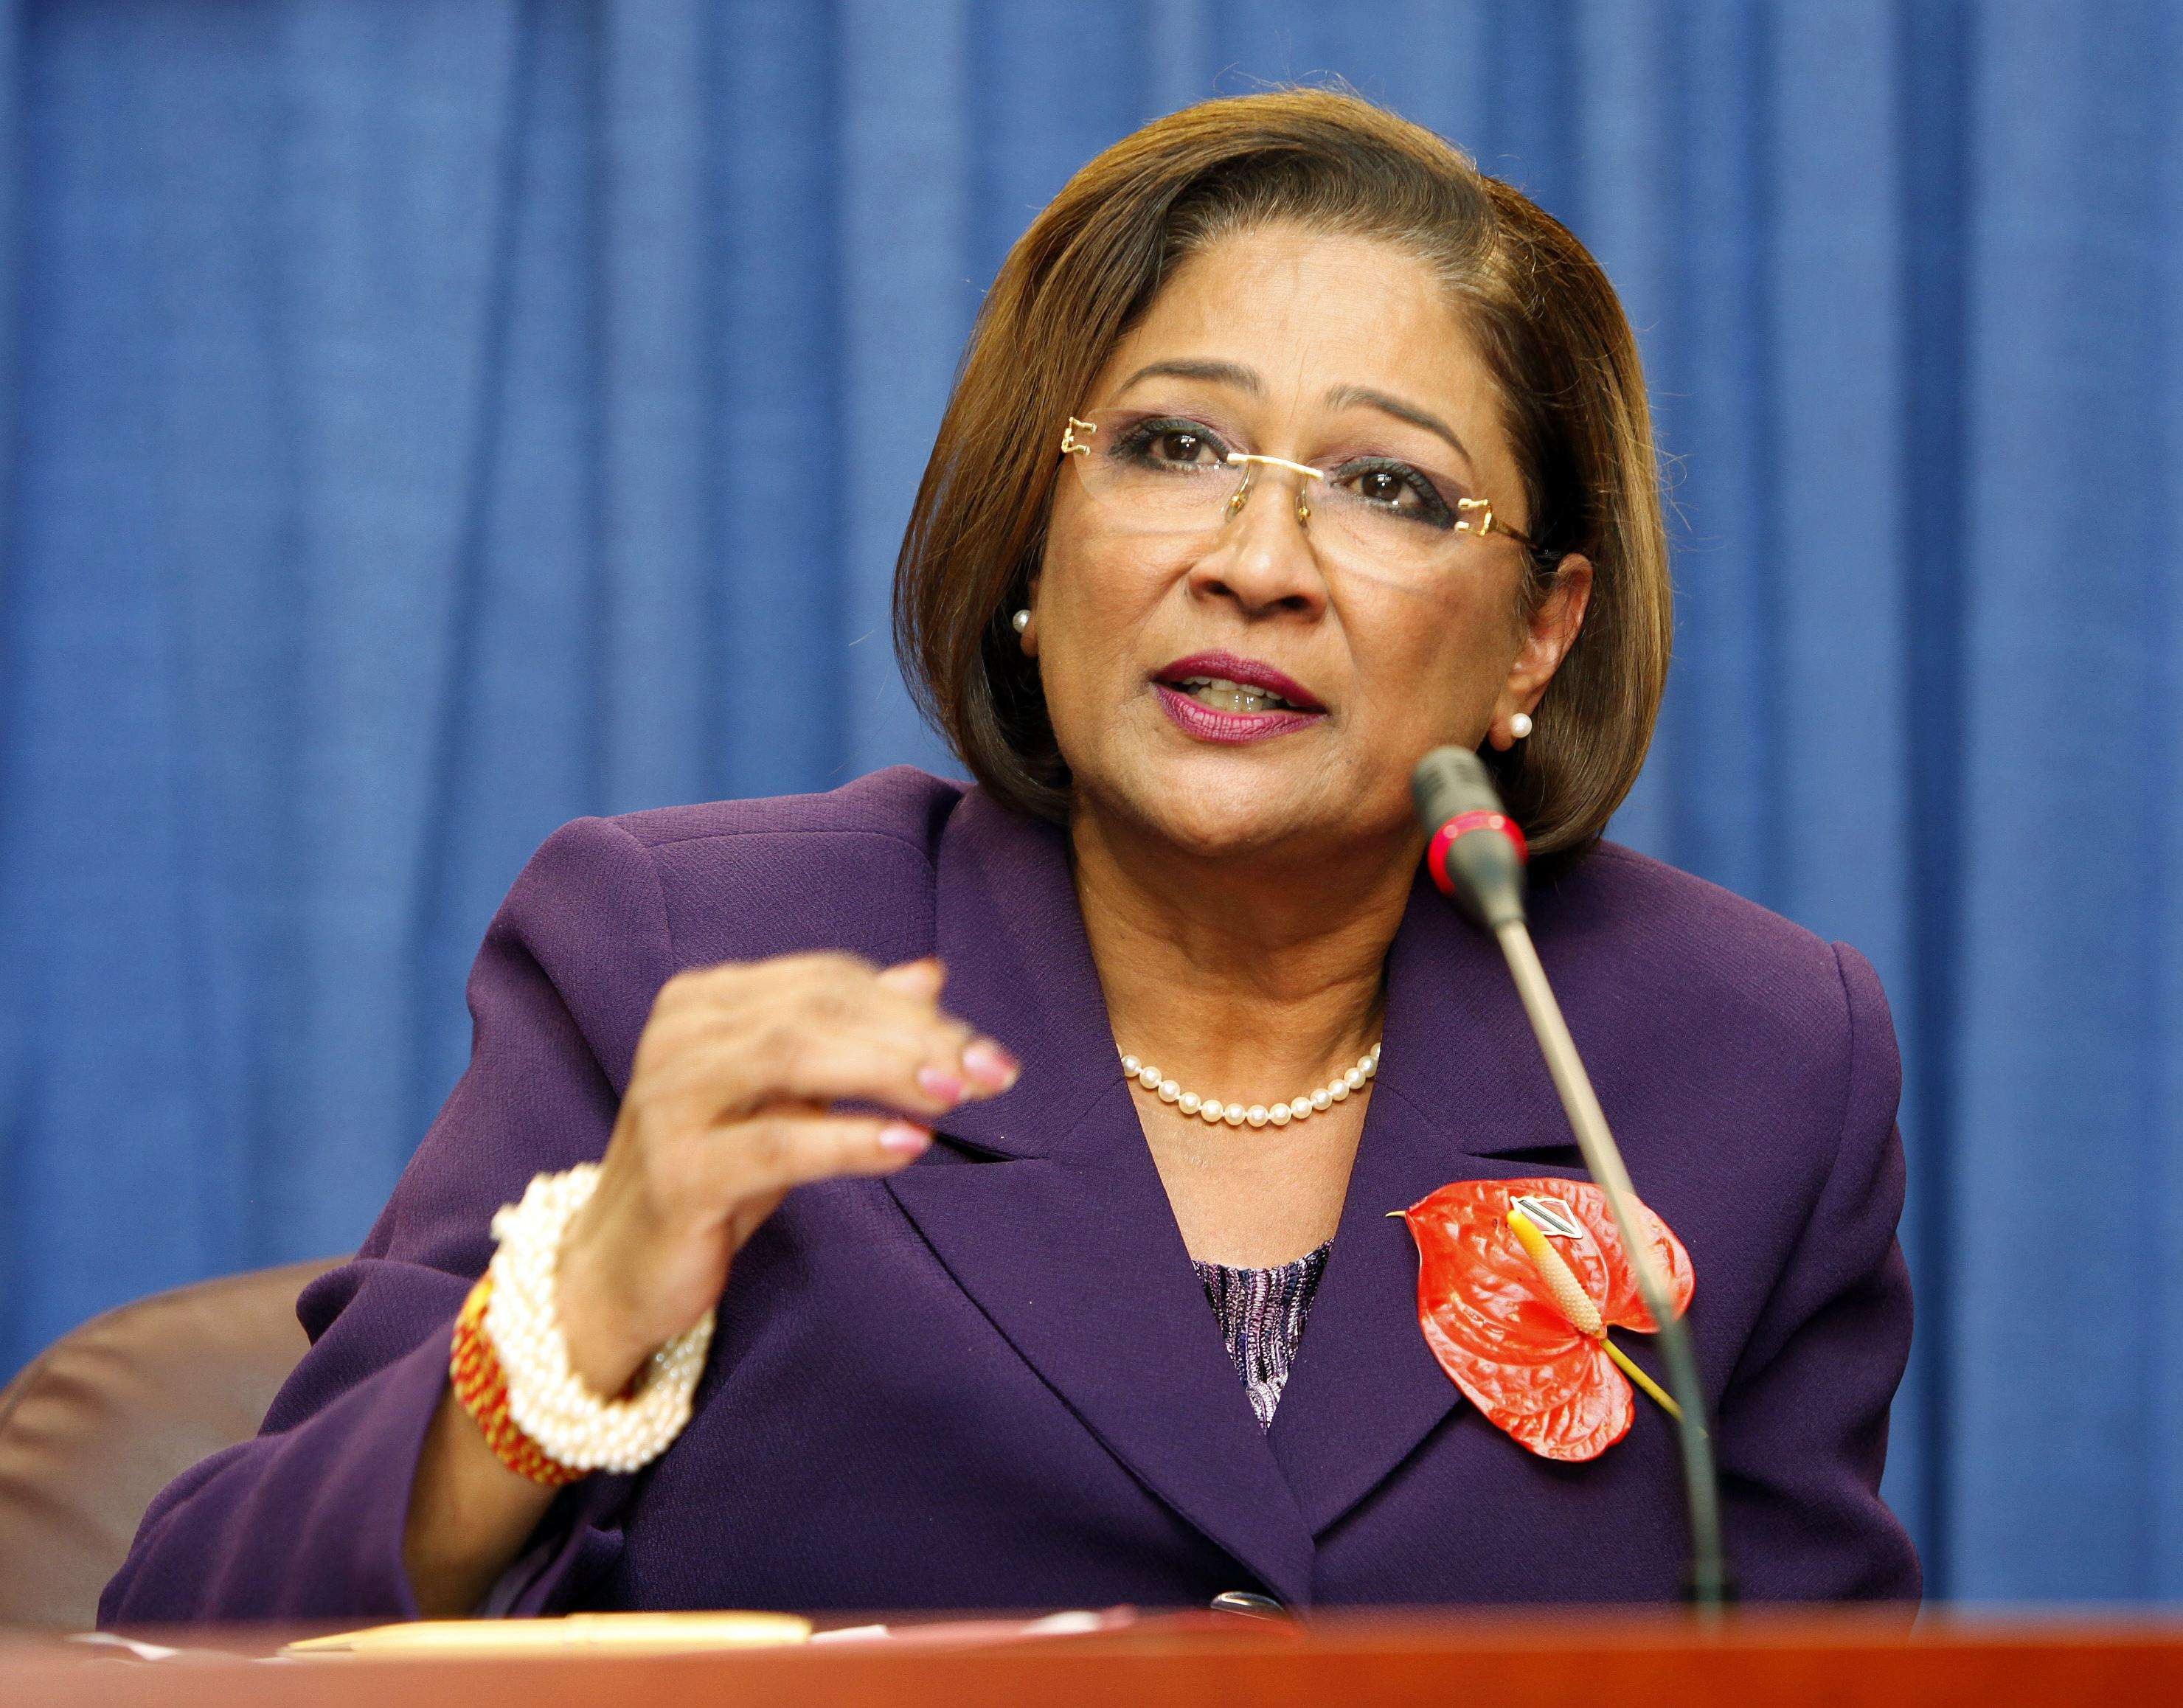 Trinidad and Tobago's Prime Minister Kamla Persad-Bissessar addresses a news conference in Port of Spain